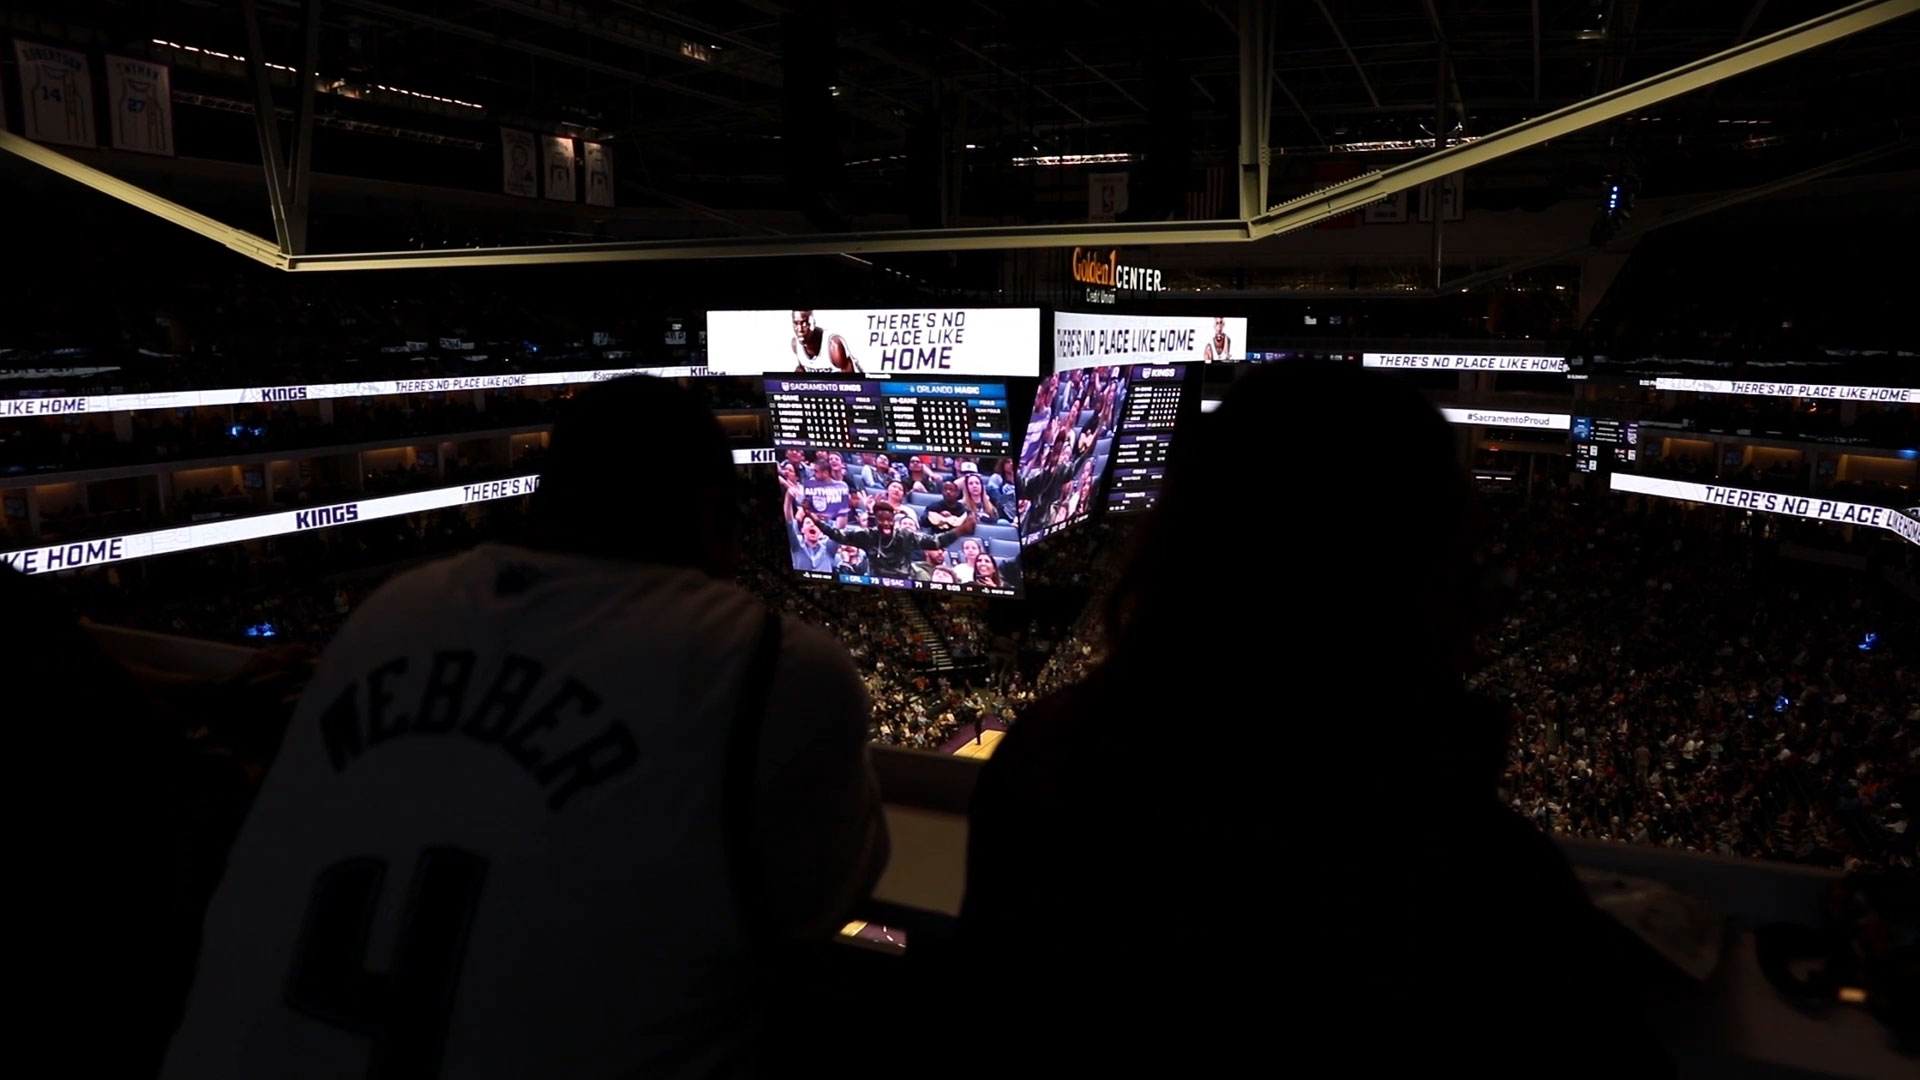 Trusted in NBA Arenas - We are trusted in and around NBA Arena's during games and special events.